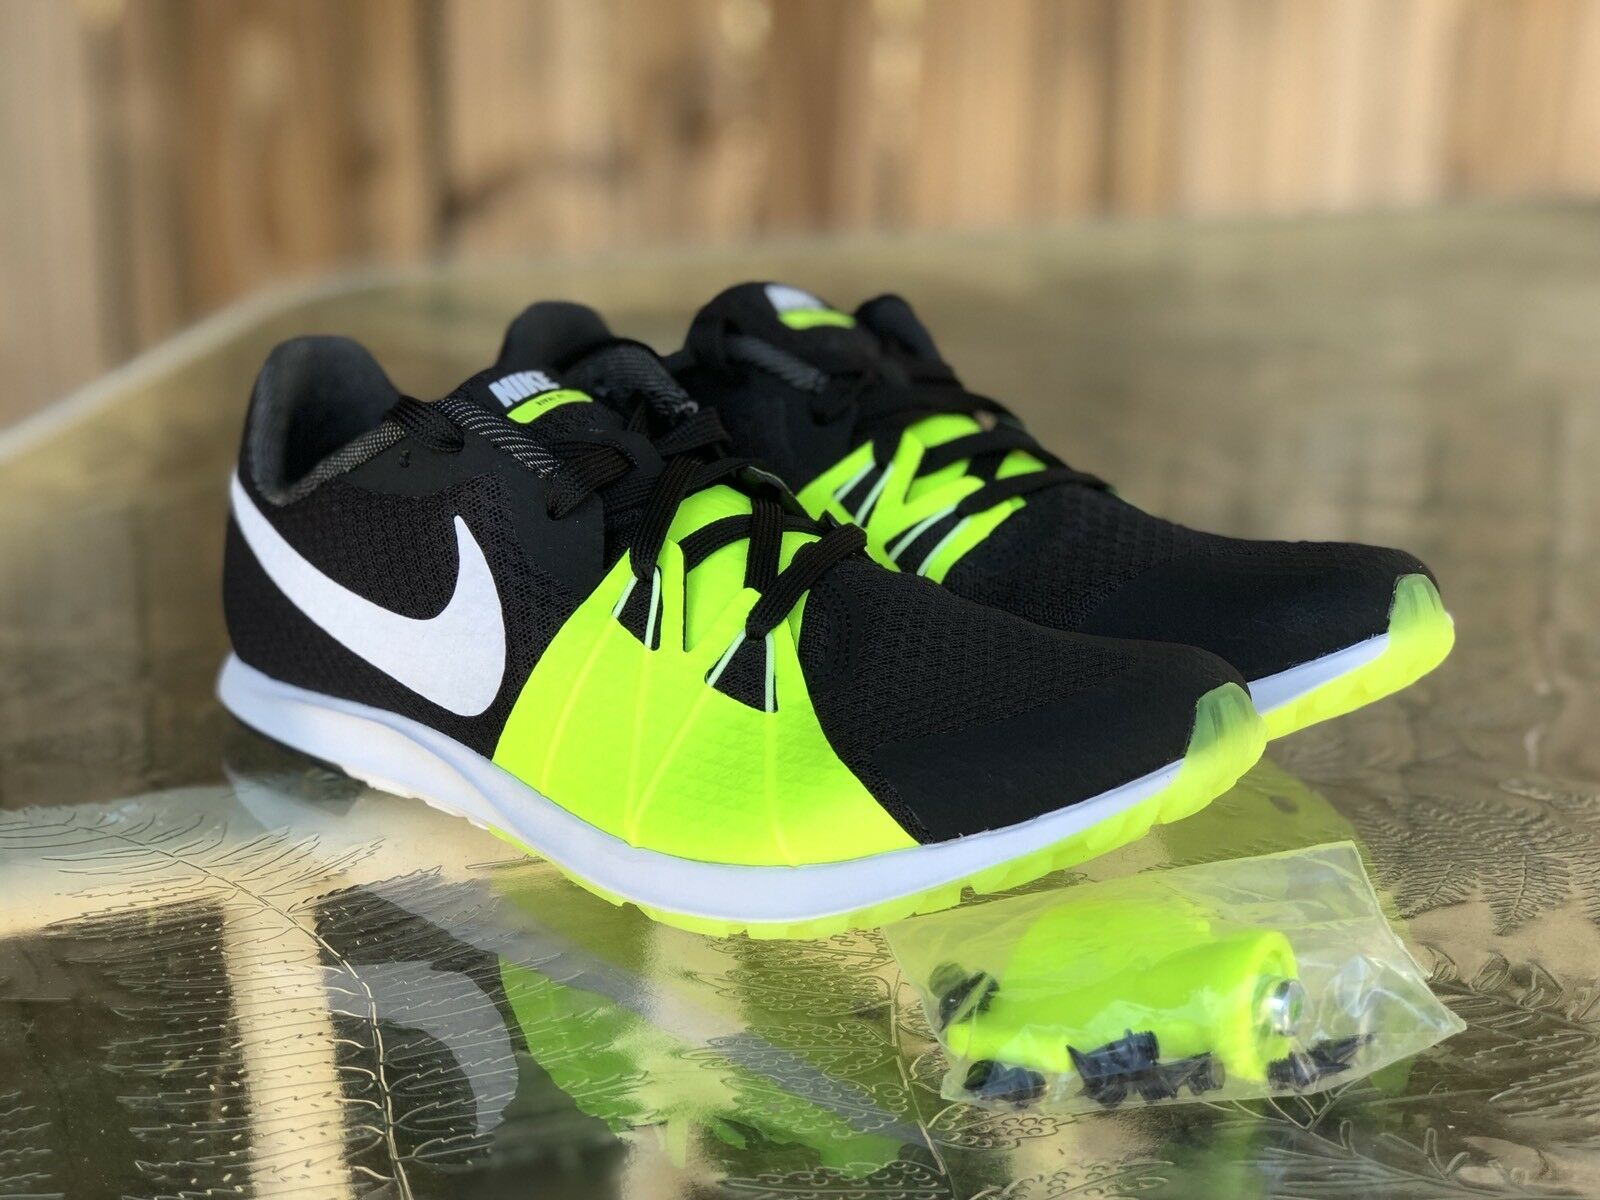 Nike Zoom Rival XC Mens Racing Track Shoe Black/Volt/White  904718-017 Comfortable